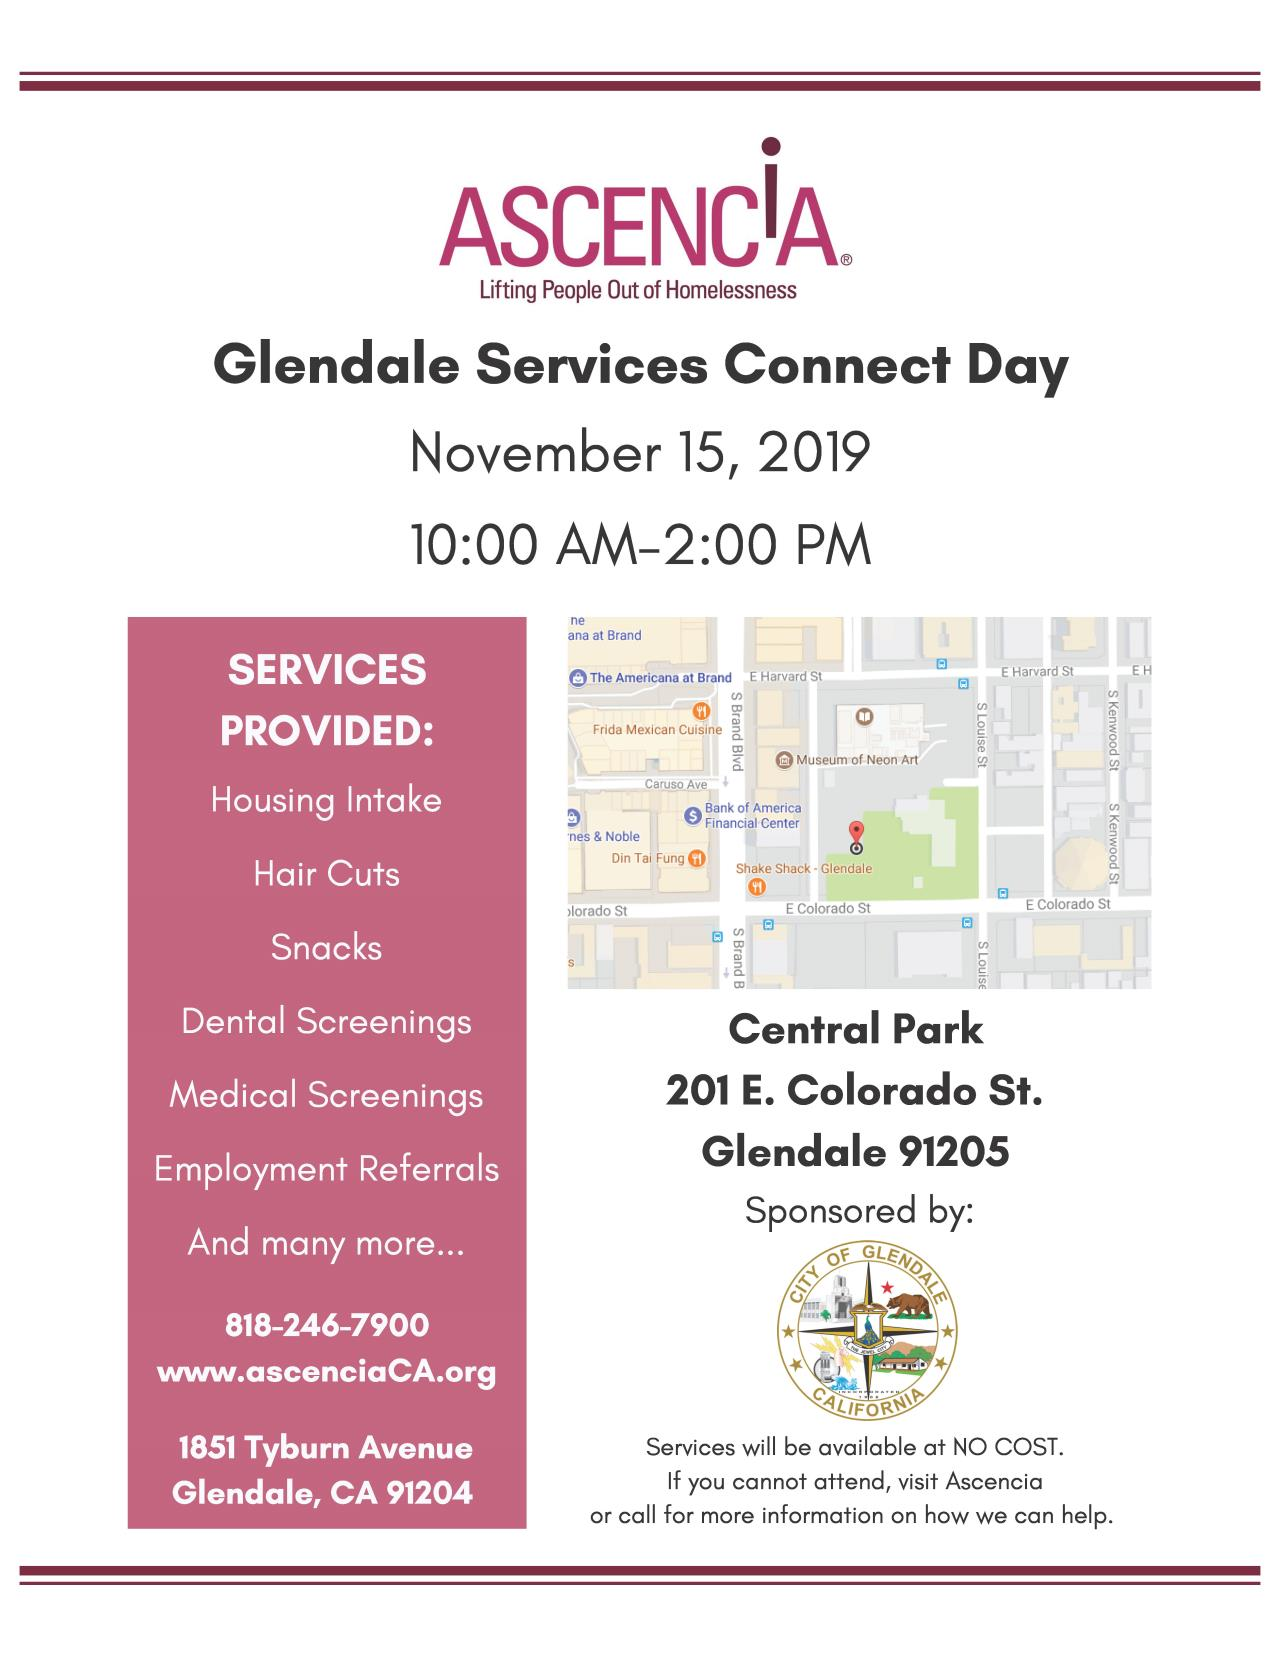 2019 Glendale Connect Day_New Glendale City Logo 10152019 (3)